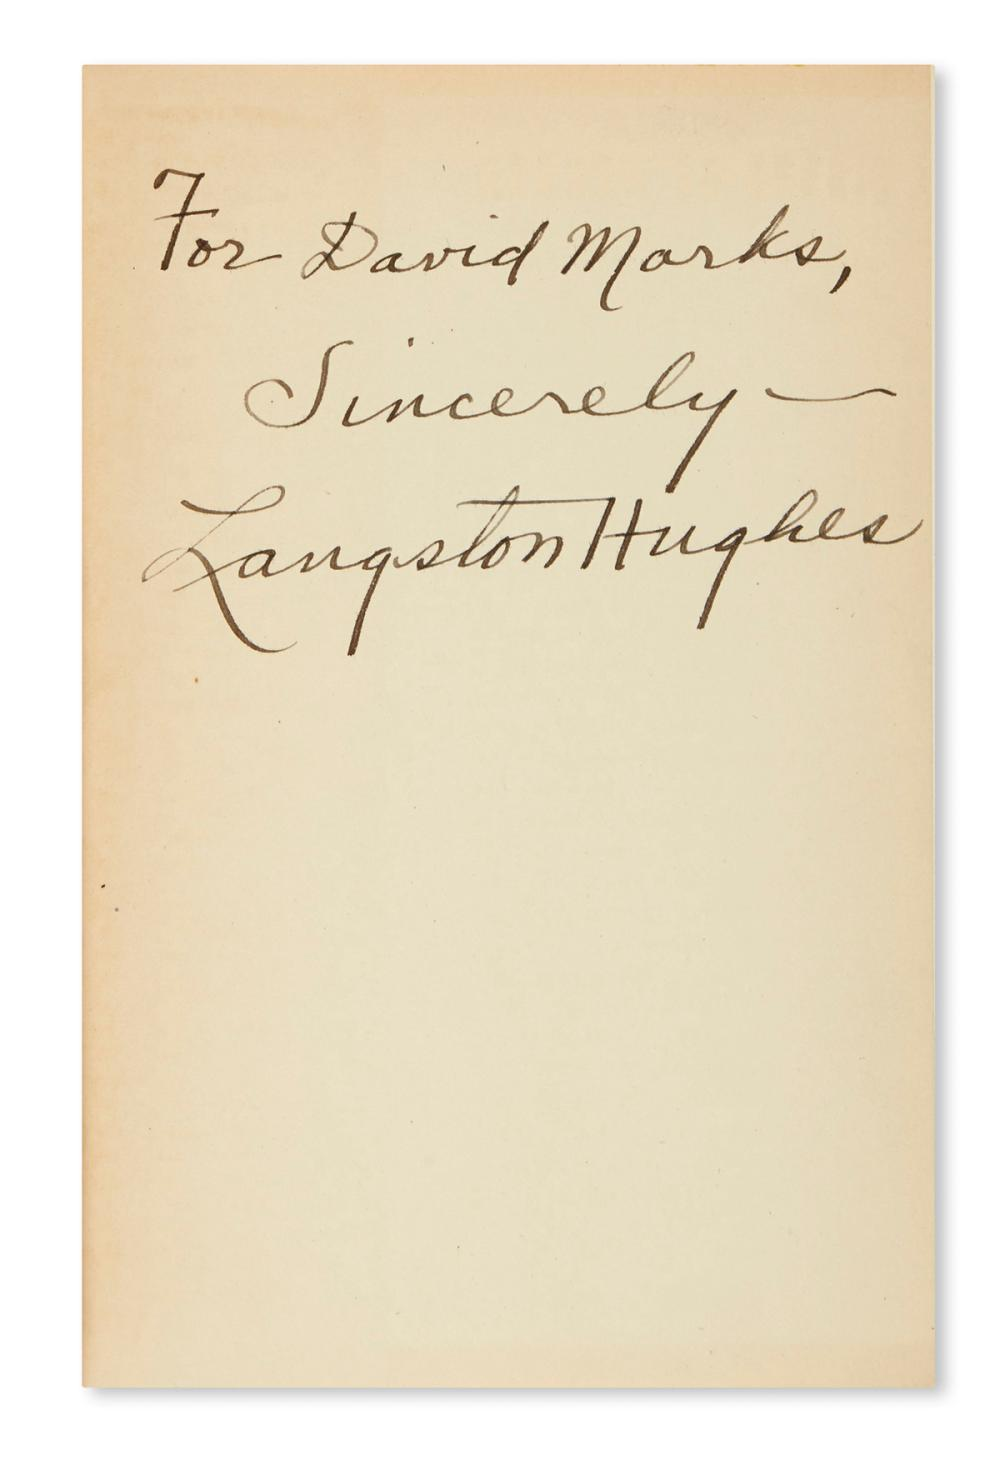 HUGHES, LANGSTON. Fields of Wonder. Signed and Inscribed, on the front free endpaper: